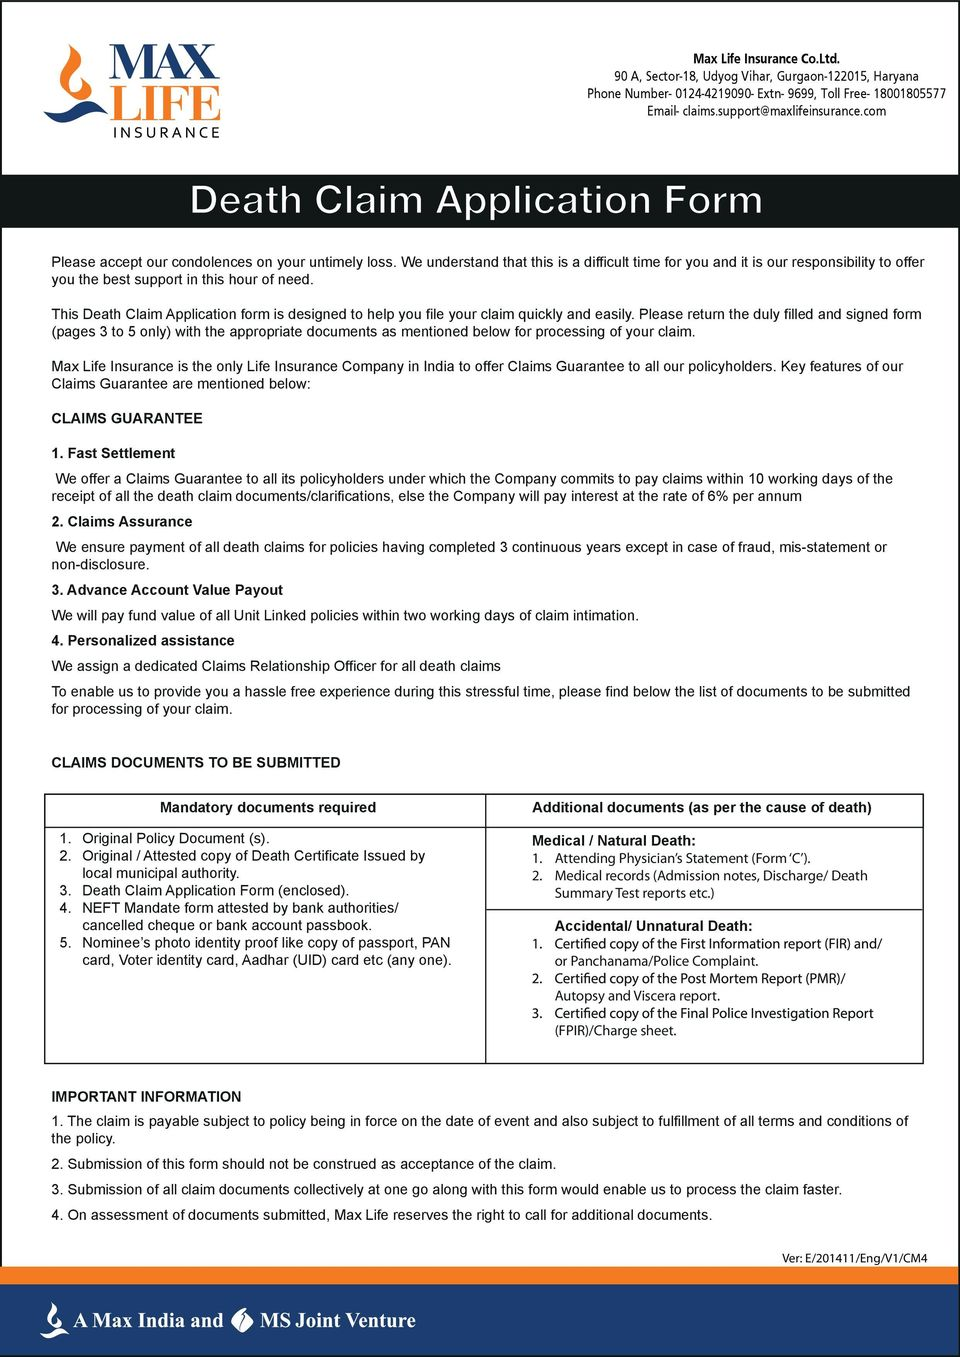 This Death Claim Application form is designed to help you file your claim quickly and easily.